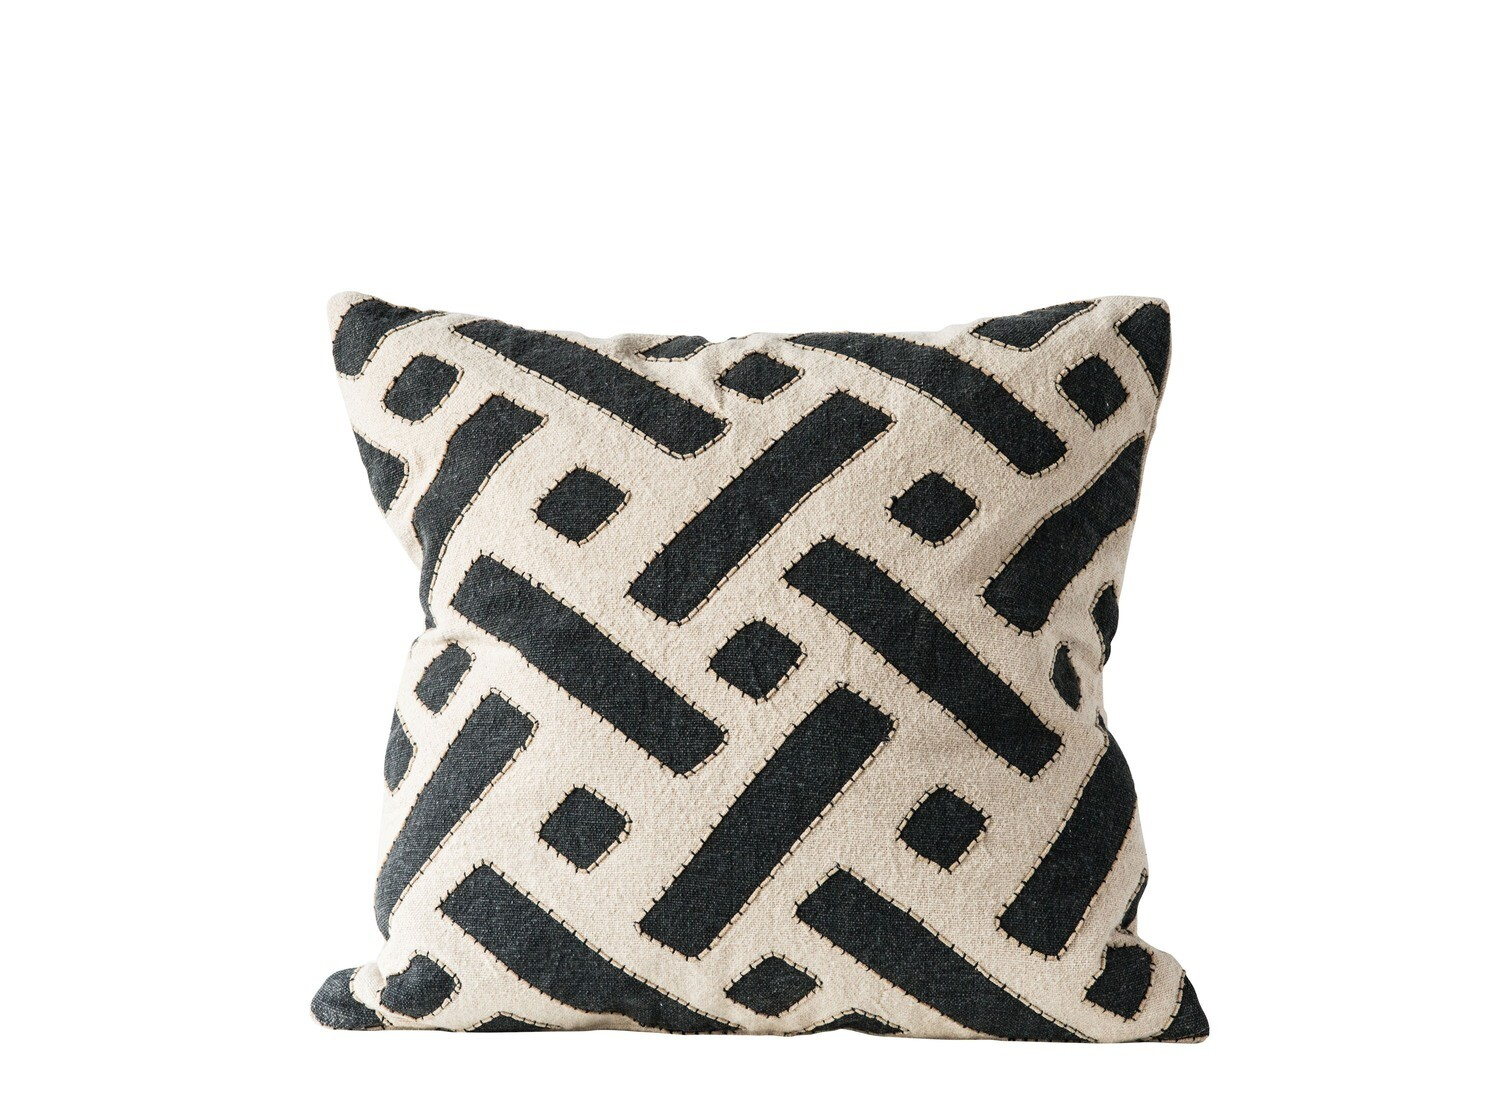 Black & Natural Square Cotton Mudcloth Pillow with Embroidered Edges